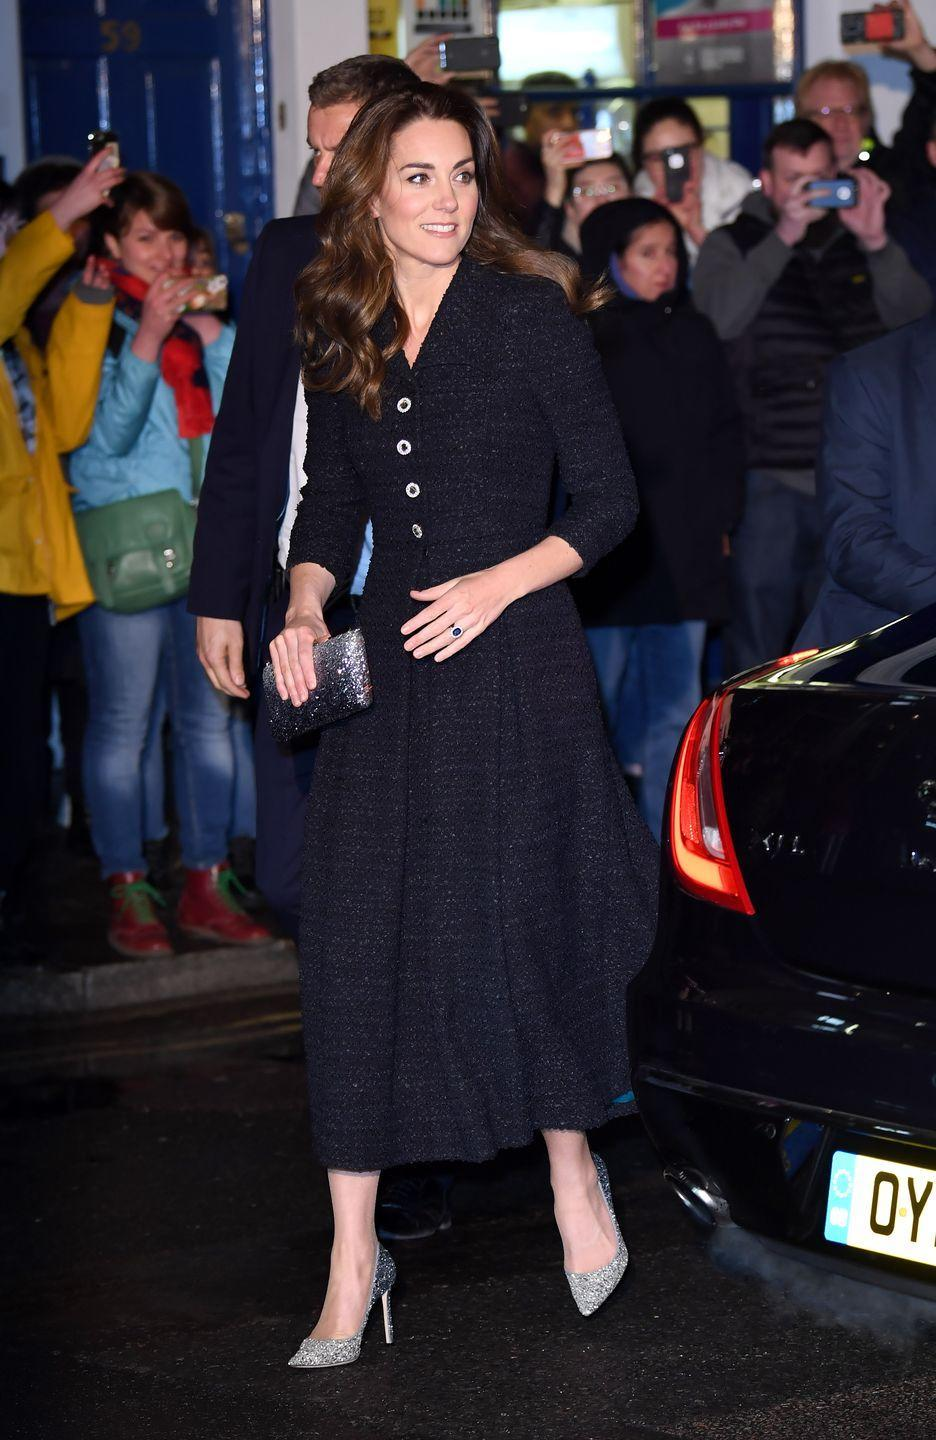 """<p>In London, <a href=""""https://www.townandcountrymag.com/society/tradition/a31081862/kate-middleton-eponine-dress-dear-evan-hansen-photos/"""" rel=""""nofollow noopener"""" target=""""_blank"""" data-ylk=""""slk:the Duchess attended a charity performance"""" class=""""link rapid-noclick-resp"""">the Duchess attended a charity performance</a> of <em>Dear Evan Hansen</em>, in support of The Royal Foundation. For the event, Kate chose an Eponine dress and sparkly silver stilettos, believed to be Jimmy Choos. </p>"""